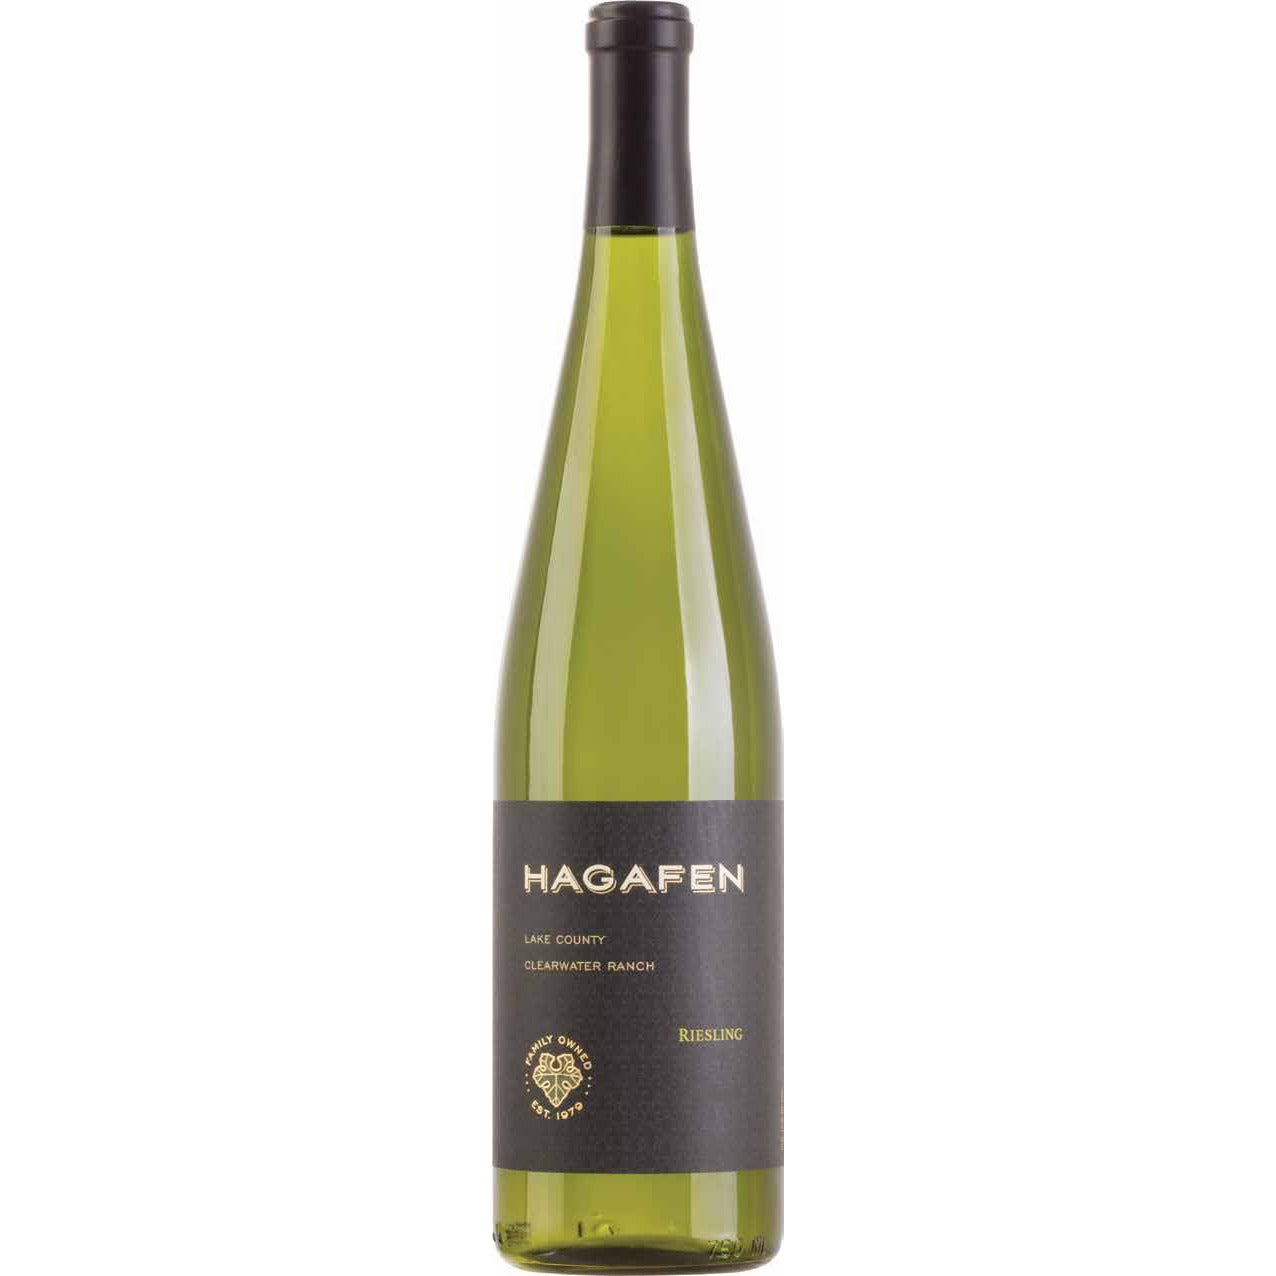 Hagafen White Riesling, Lake County 2018